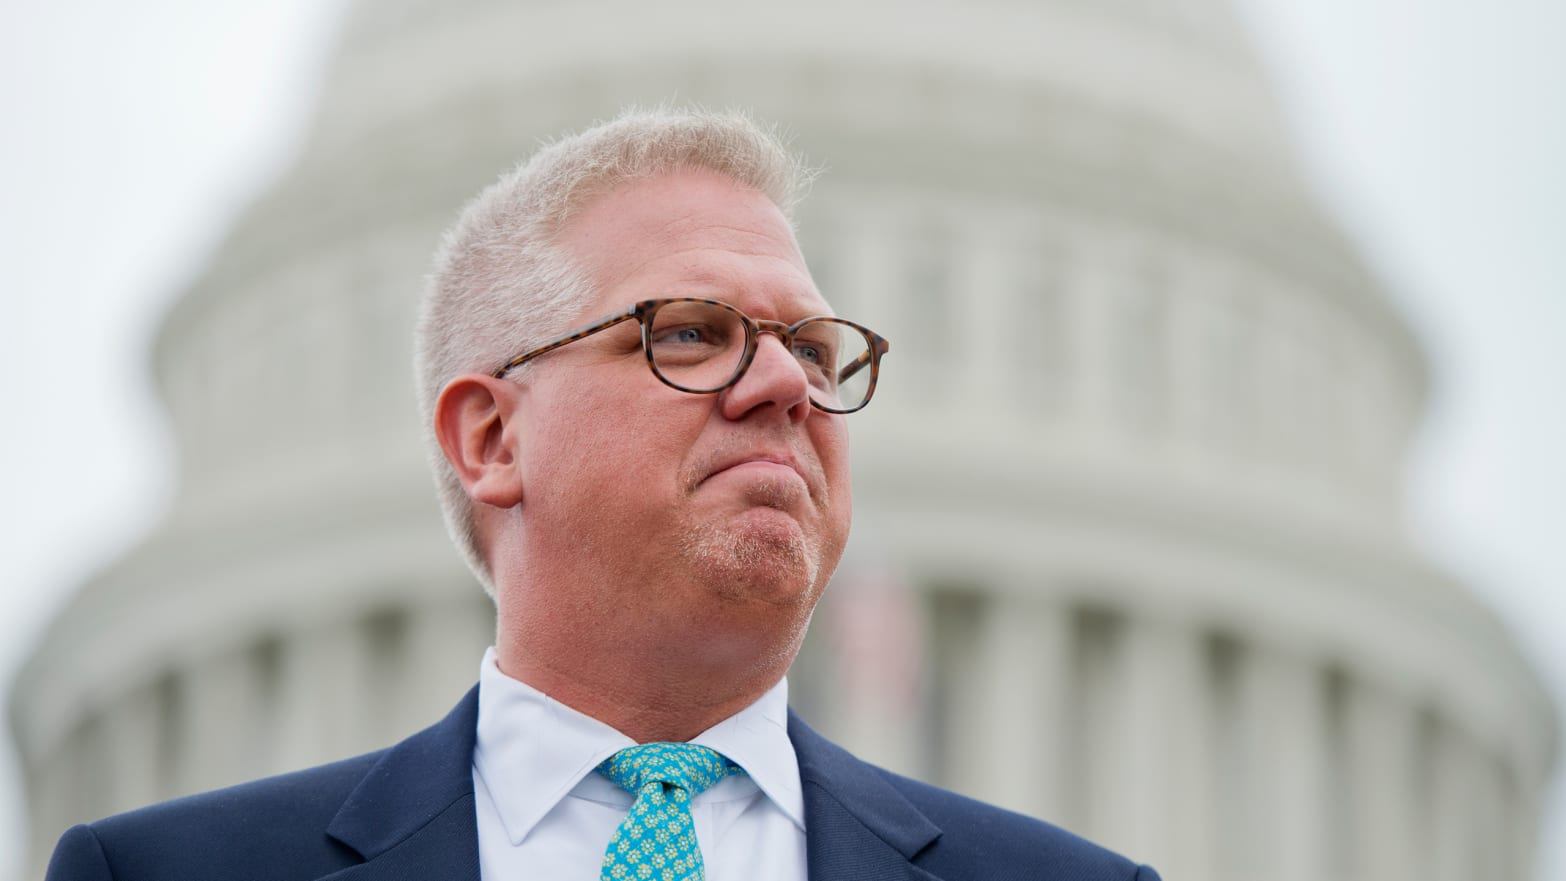 Conservative talk show host Glenn Beck attends a Tea Party Patriots rally on the west front of the Capitol to protest the IRS's targeting of conservative political groups.